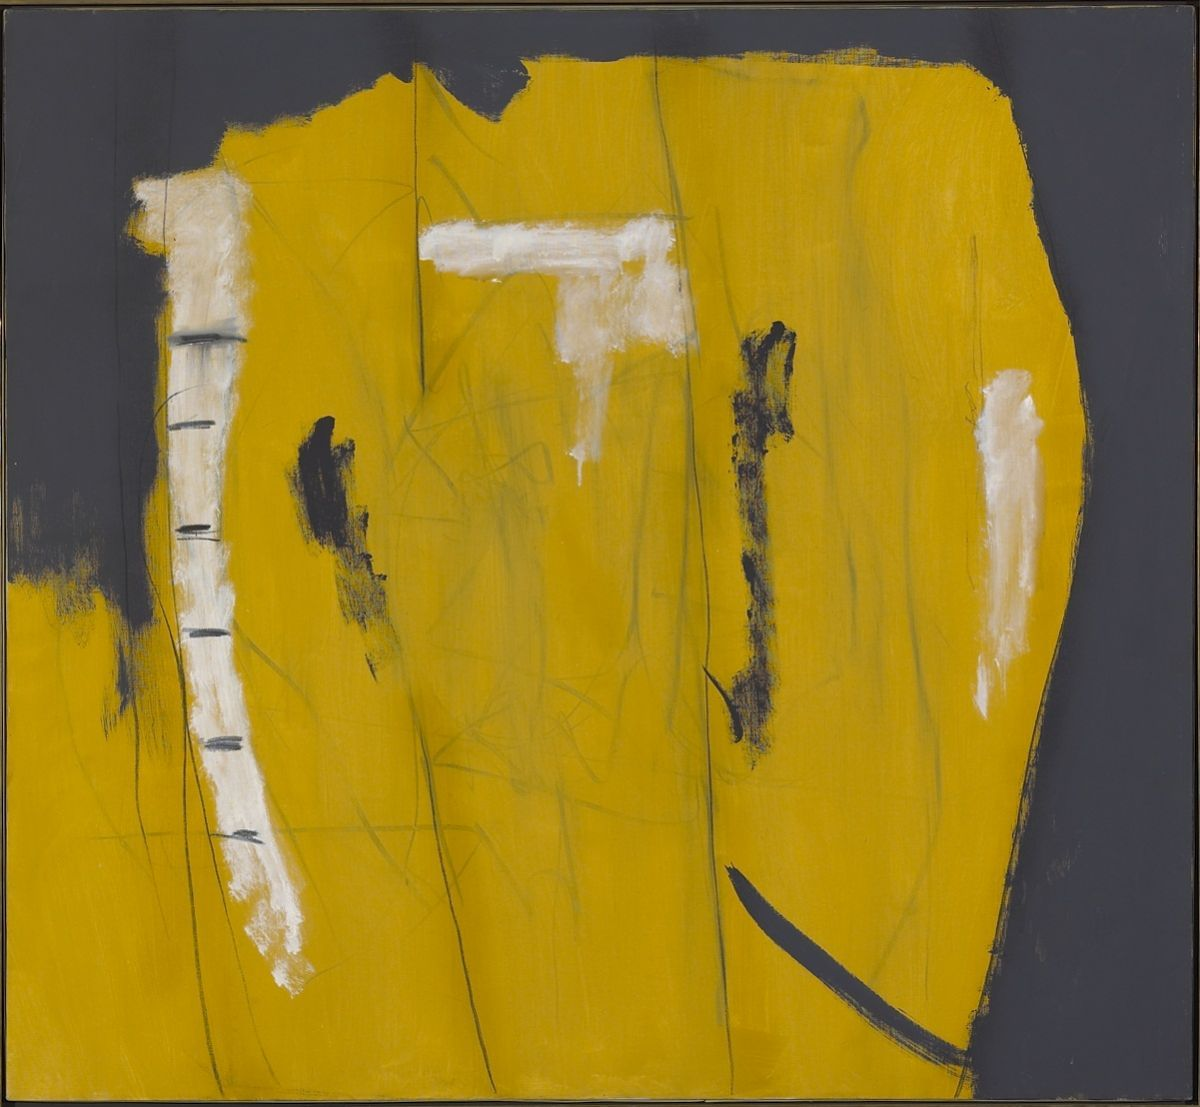 Appetite for Art: Wall with Graffiti (1950) by Robert Motherwell ...